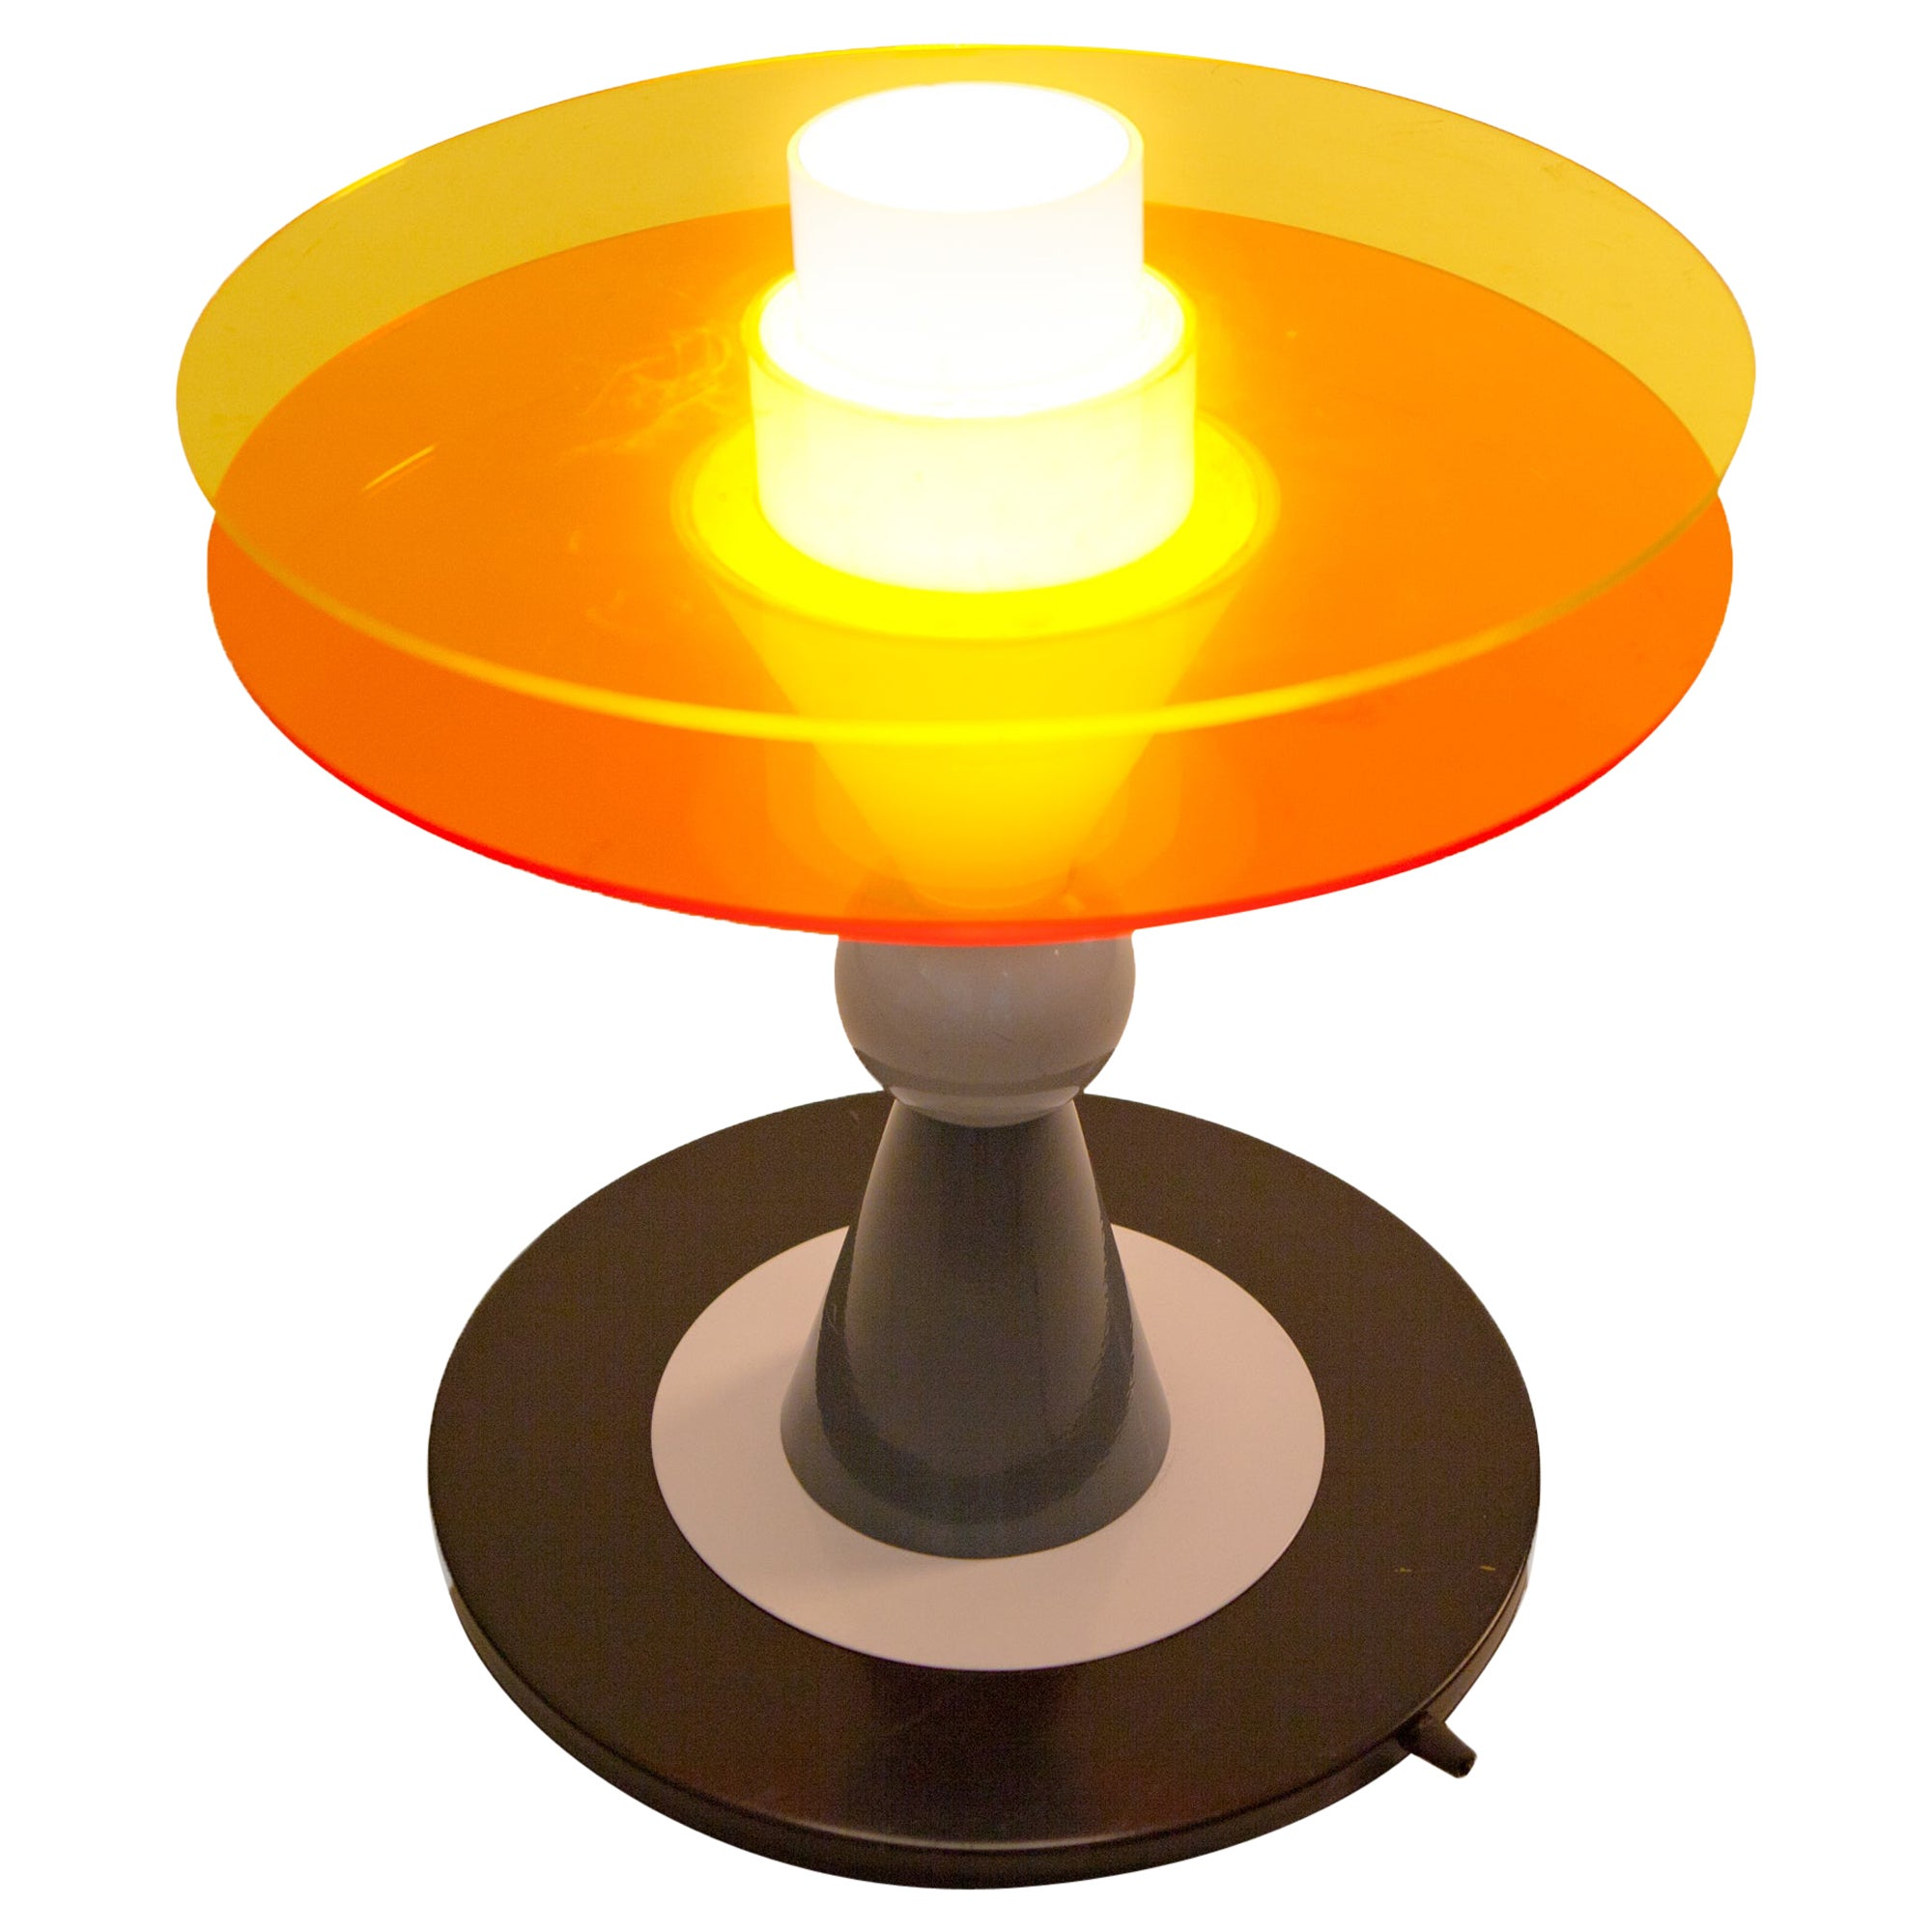 Bay Table Lamp USA, 110 Volts, by Ettore Sottsass from Memphis Milano